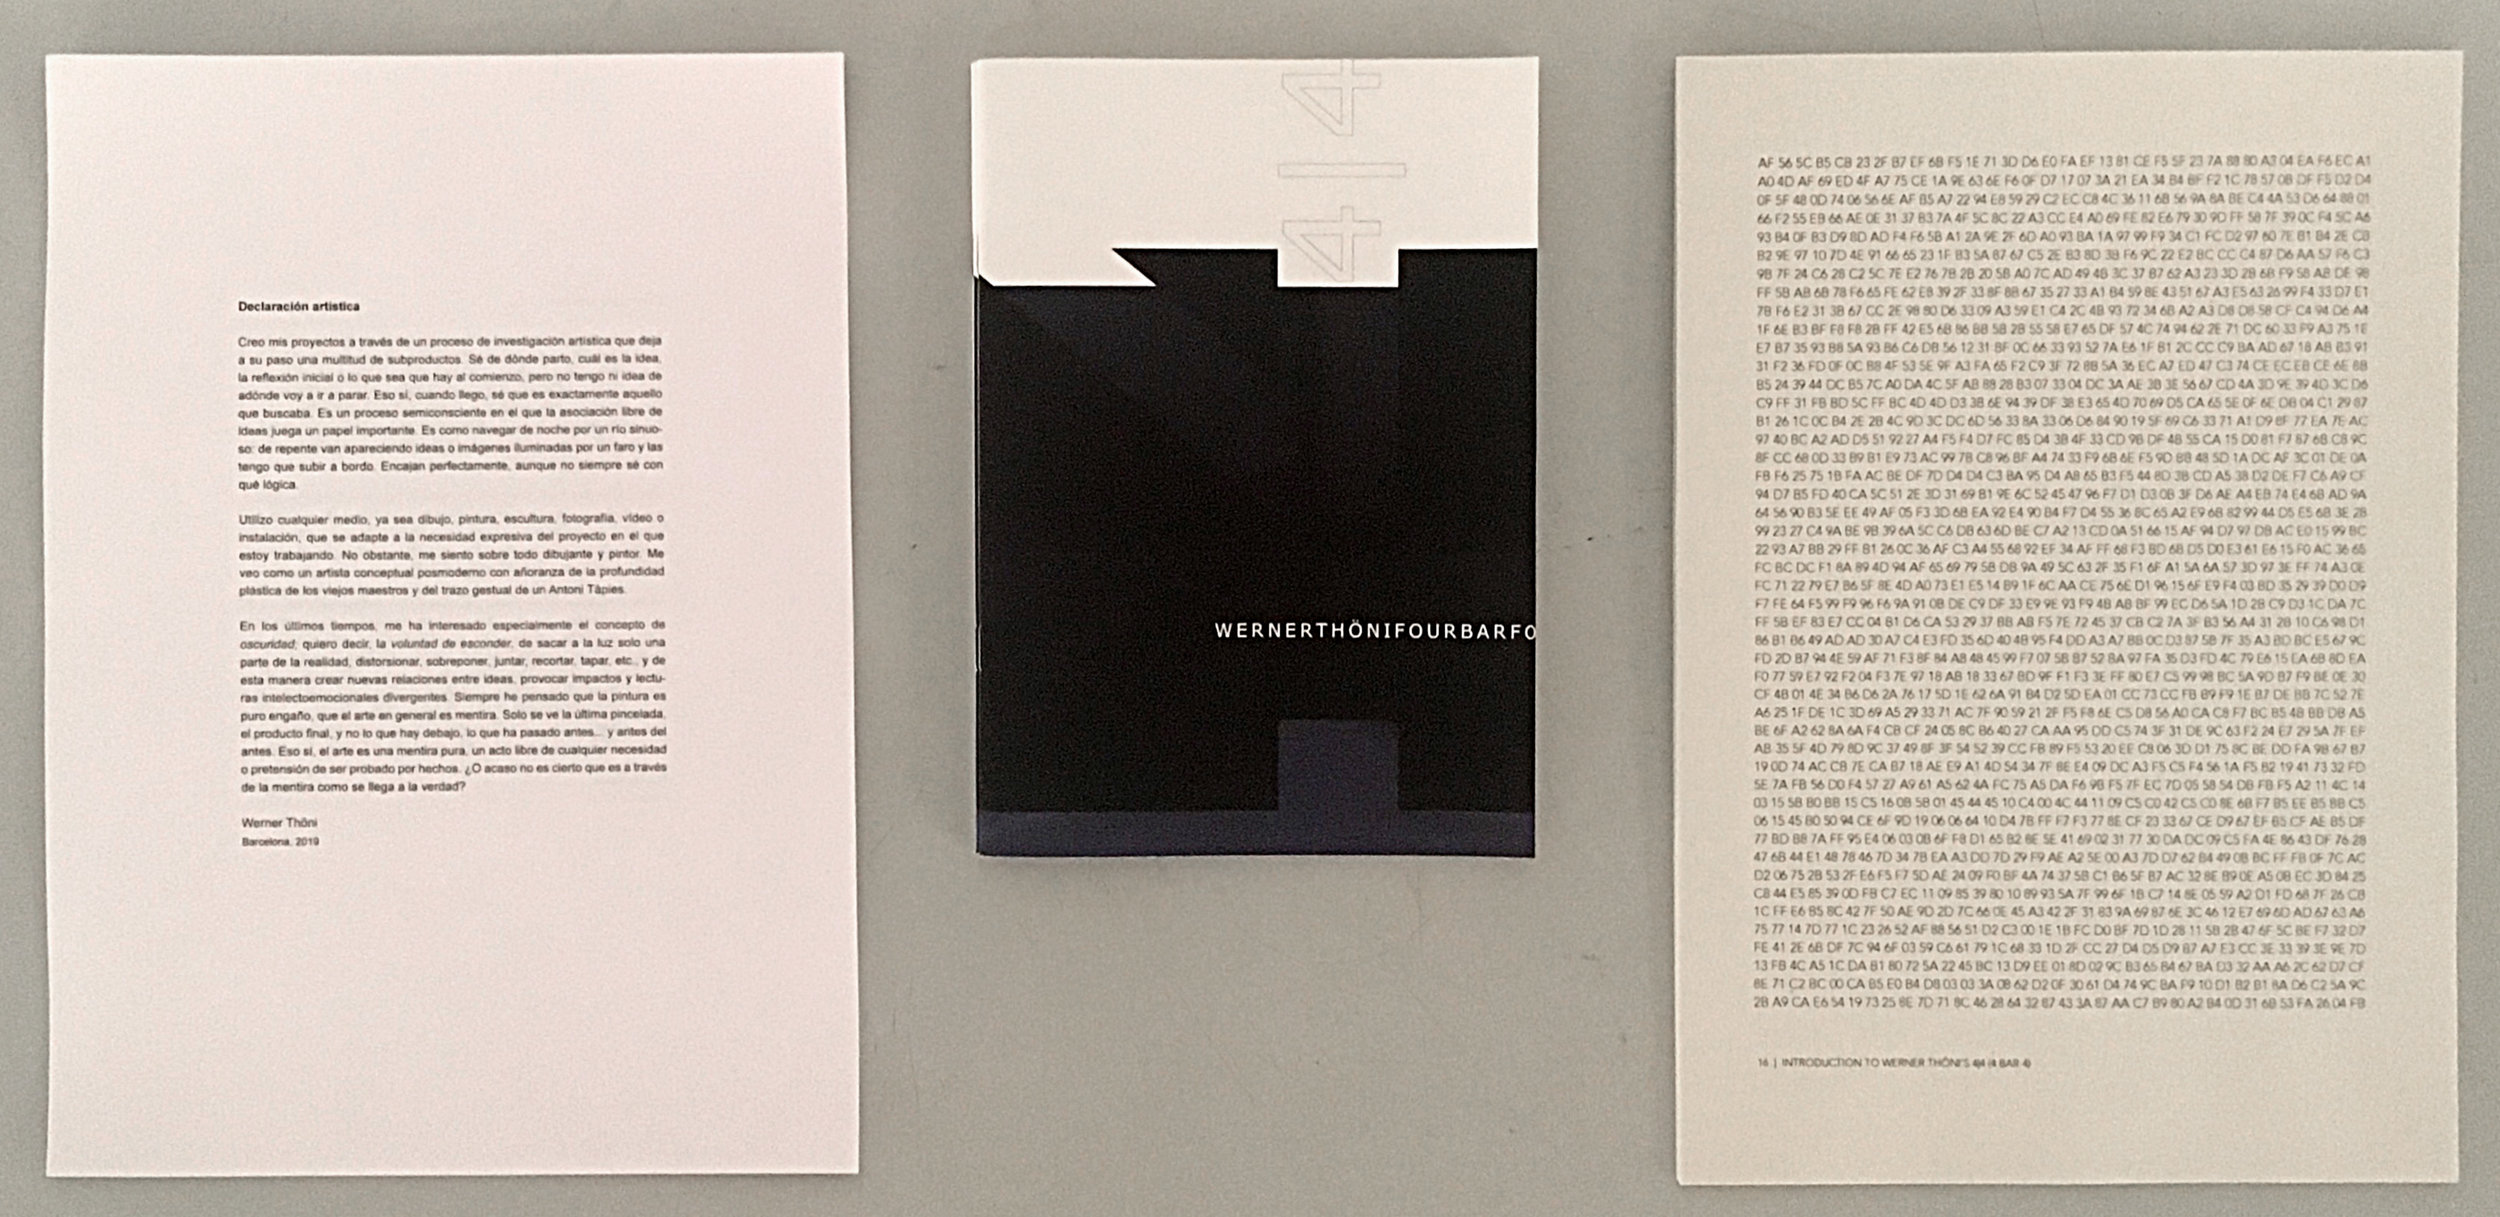 Statement, Booklet, and Opening Text for 4|4<VU (Werner Thöni)